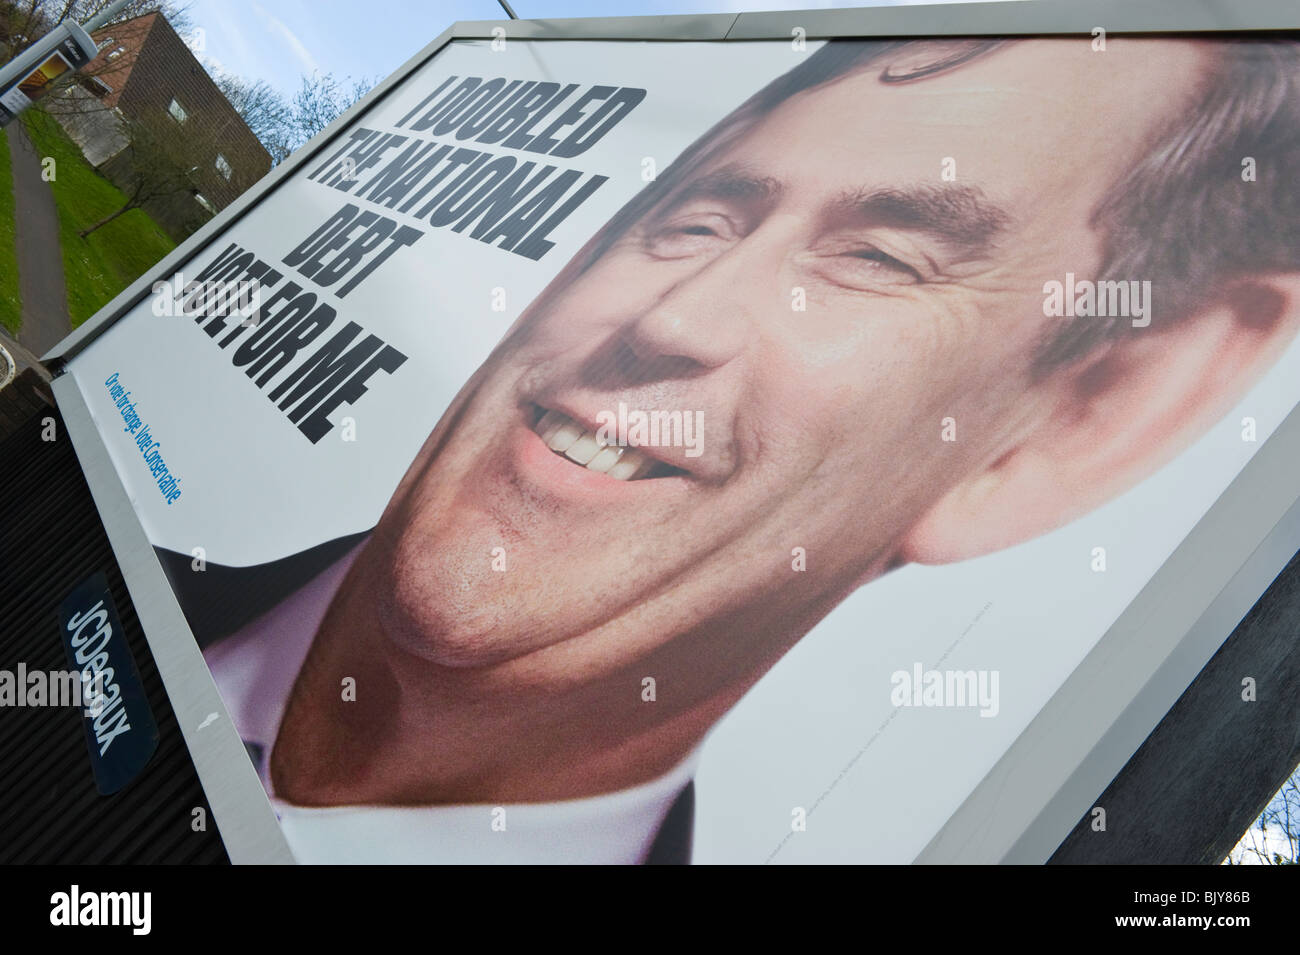 Conservative Party 2010 General Election 48 sheet billboard poster featuring Gordon Brown at JCDecaux site on roadside - Stock Image